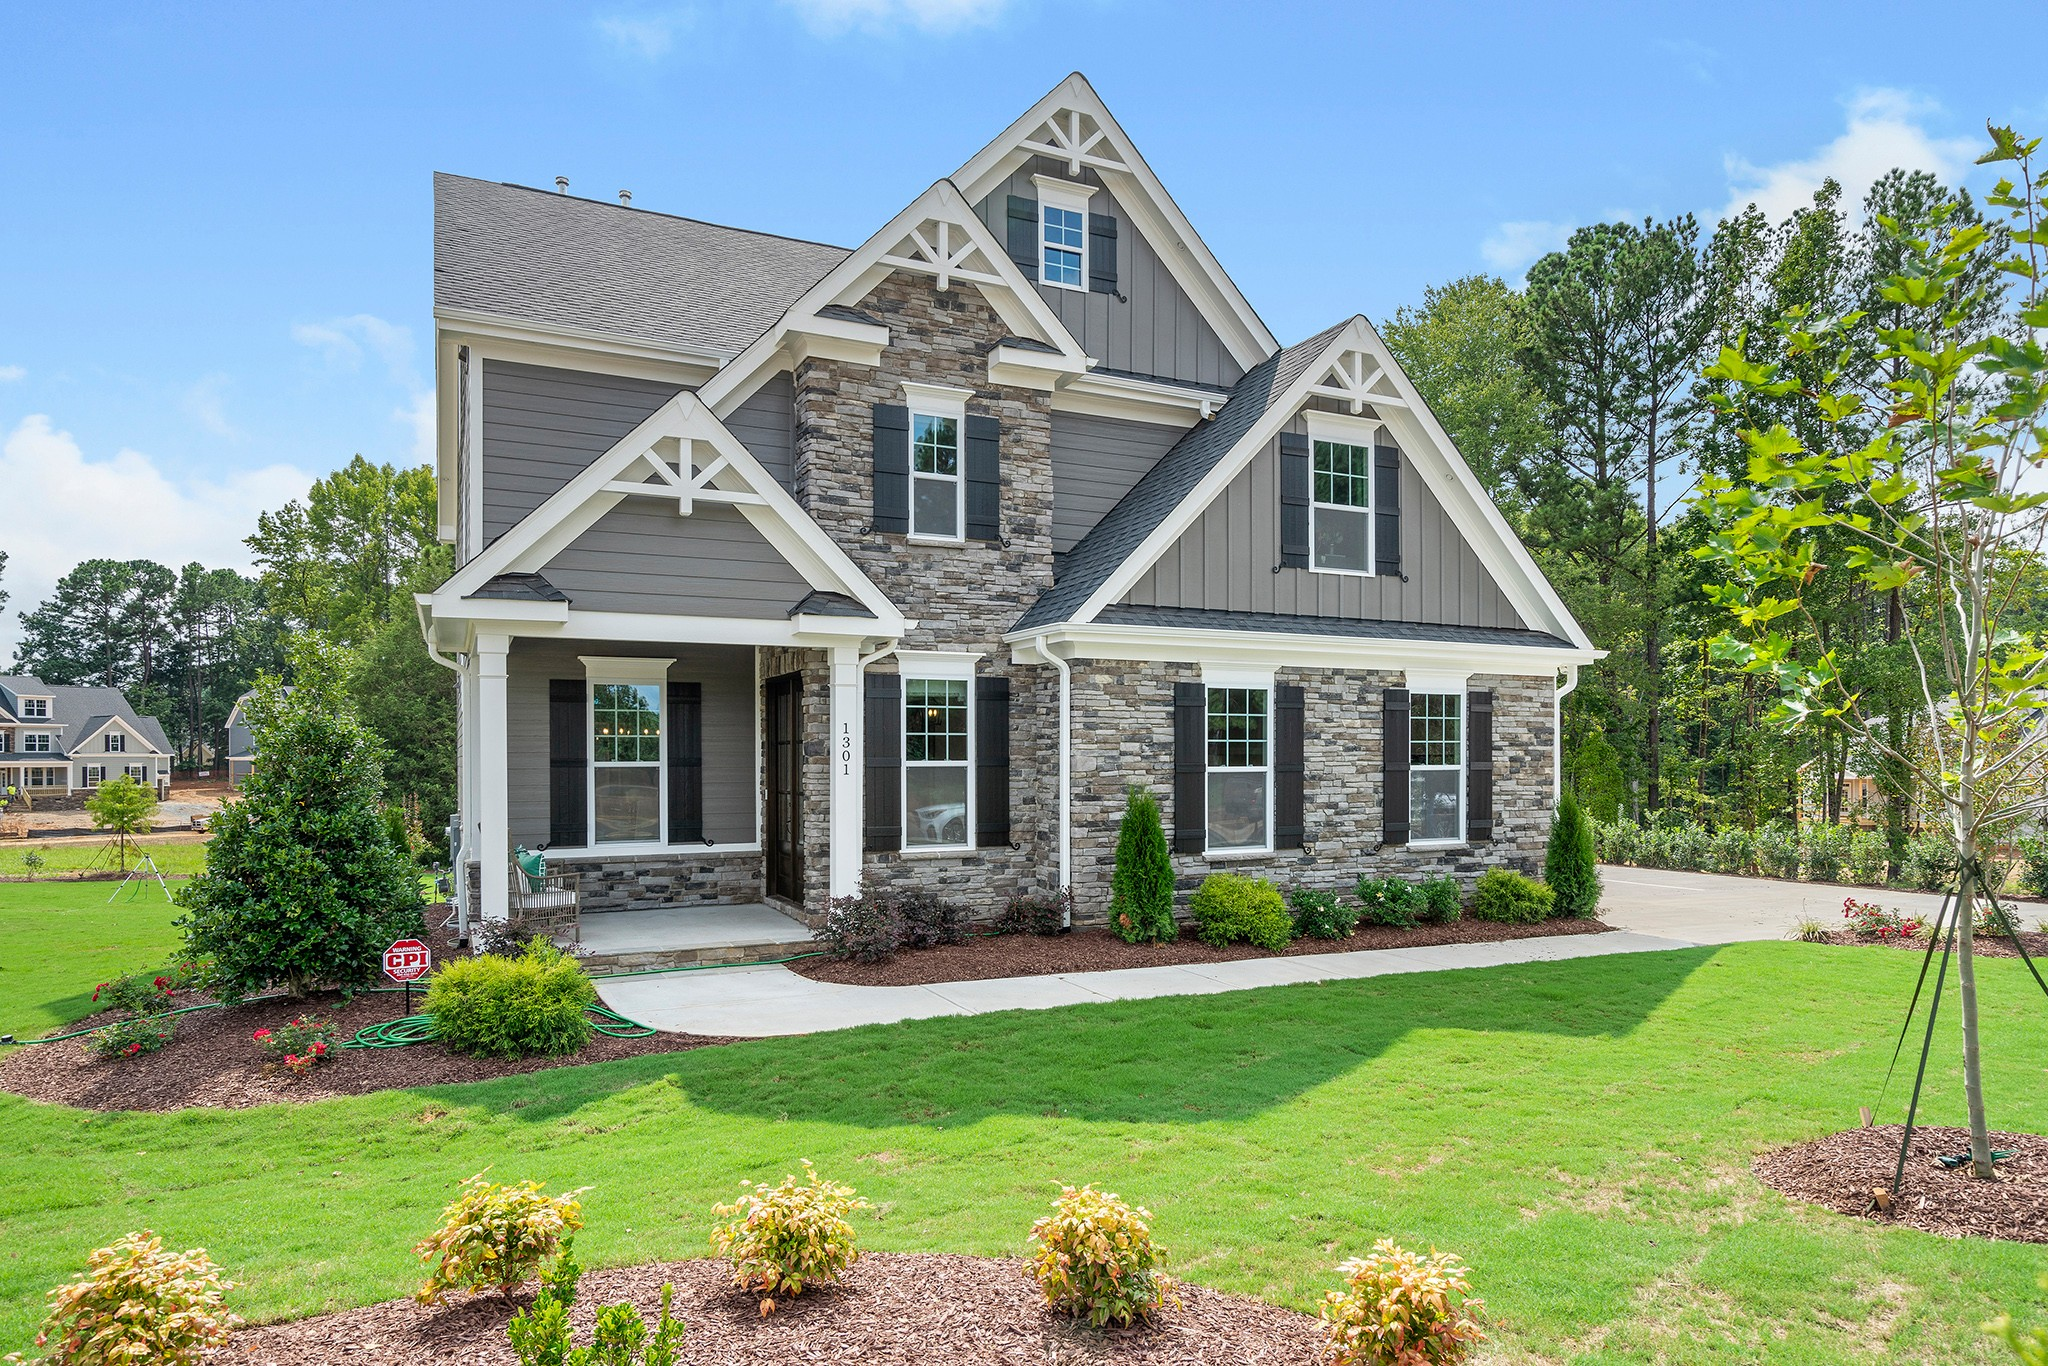 The Monroe Model Home in Fairview Park Cary NC